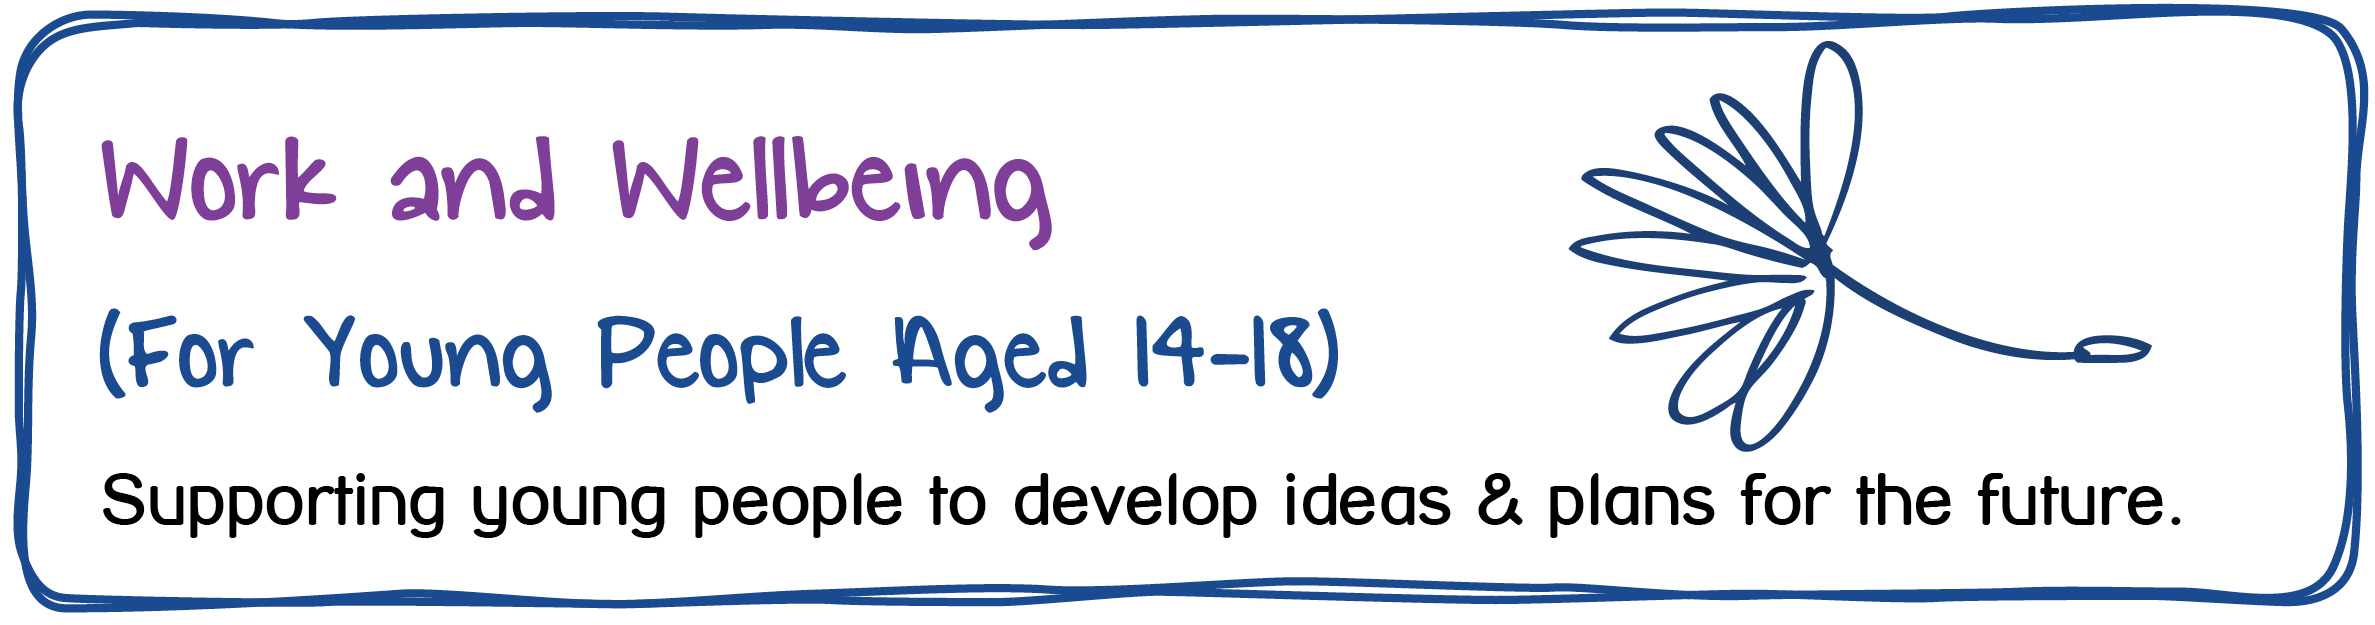 Work and Wellbeing (For young people aged 14-18). Supporting young people to develop ideas and plans for the future.